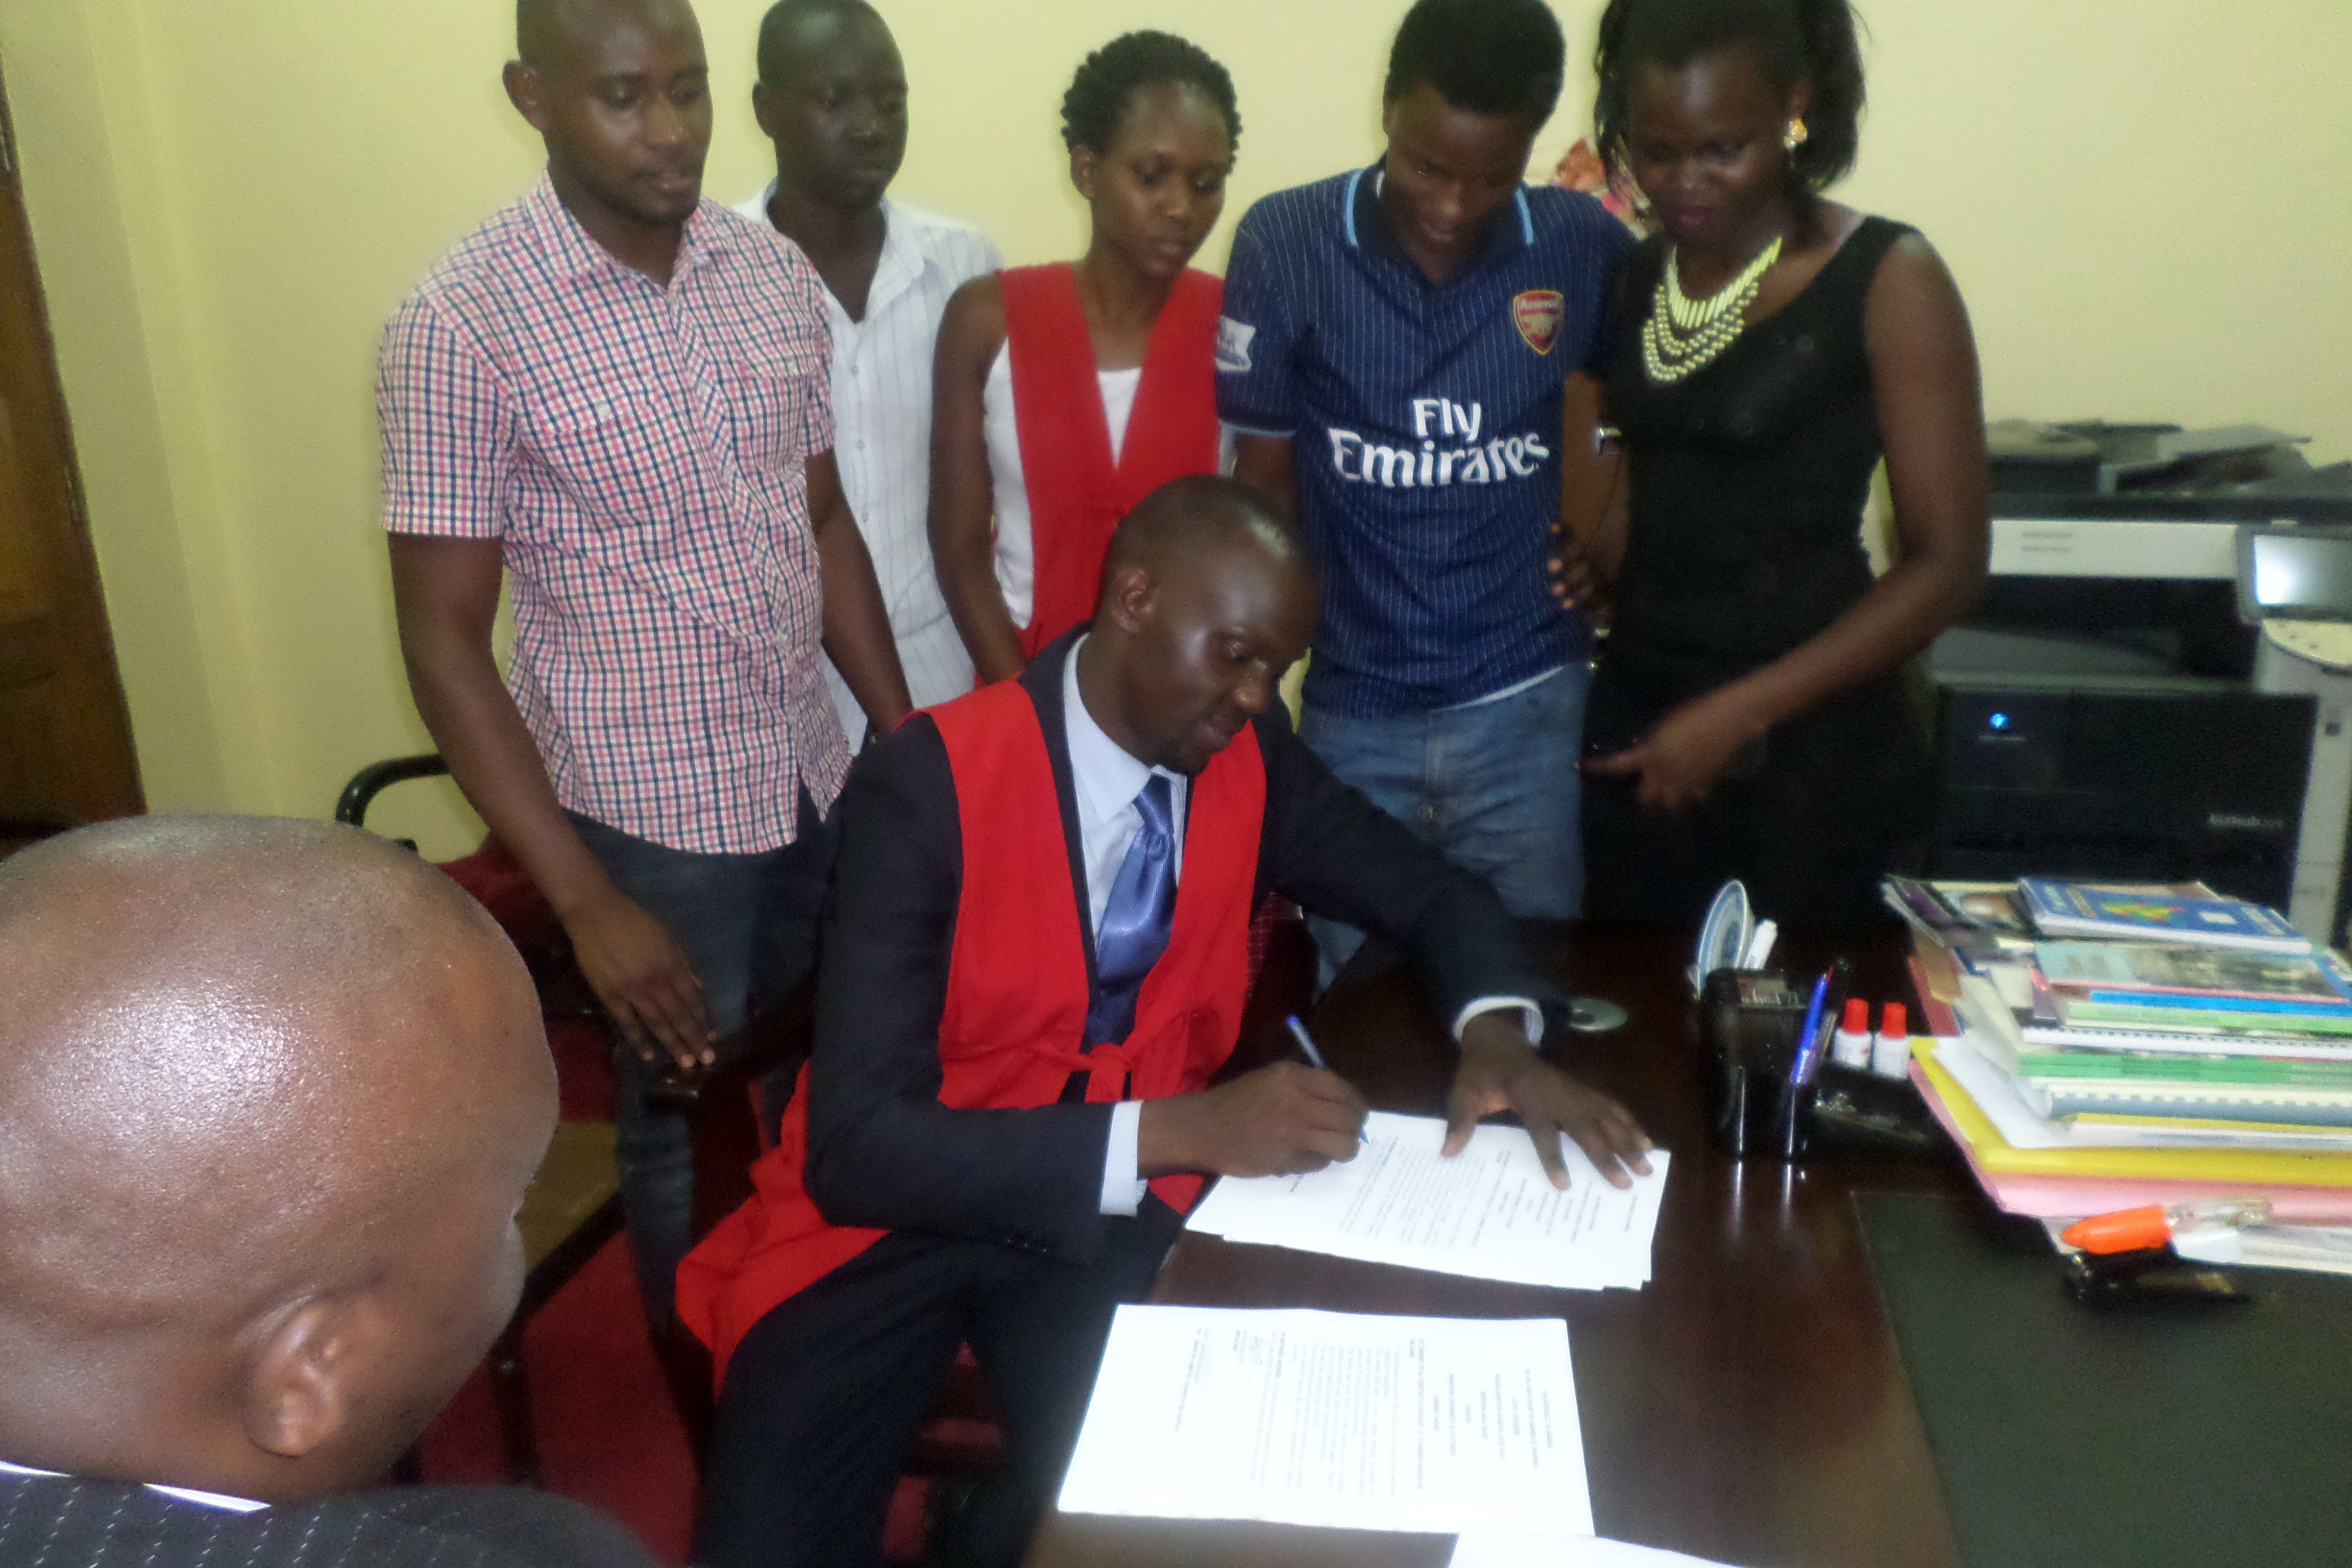 Bala David signs the consent form